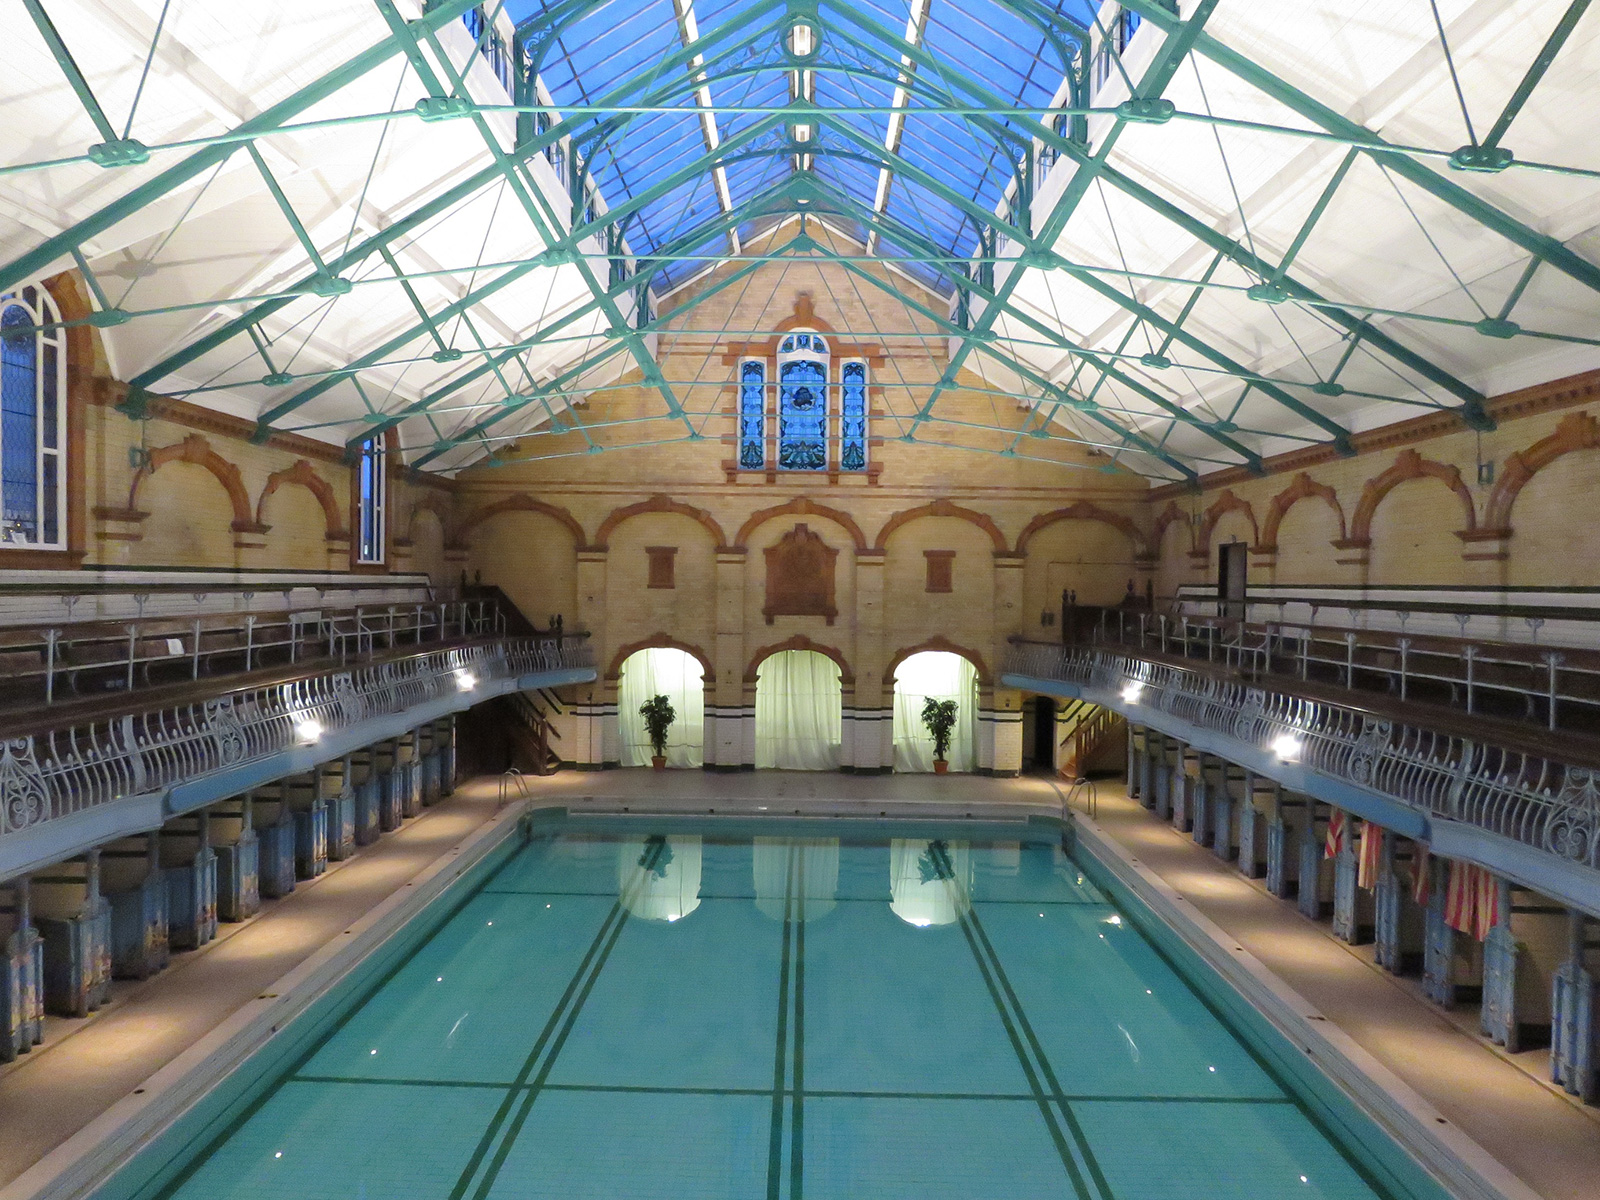 British swimming pools – Victoria Baths Manchester